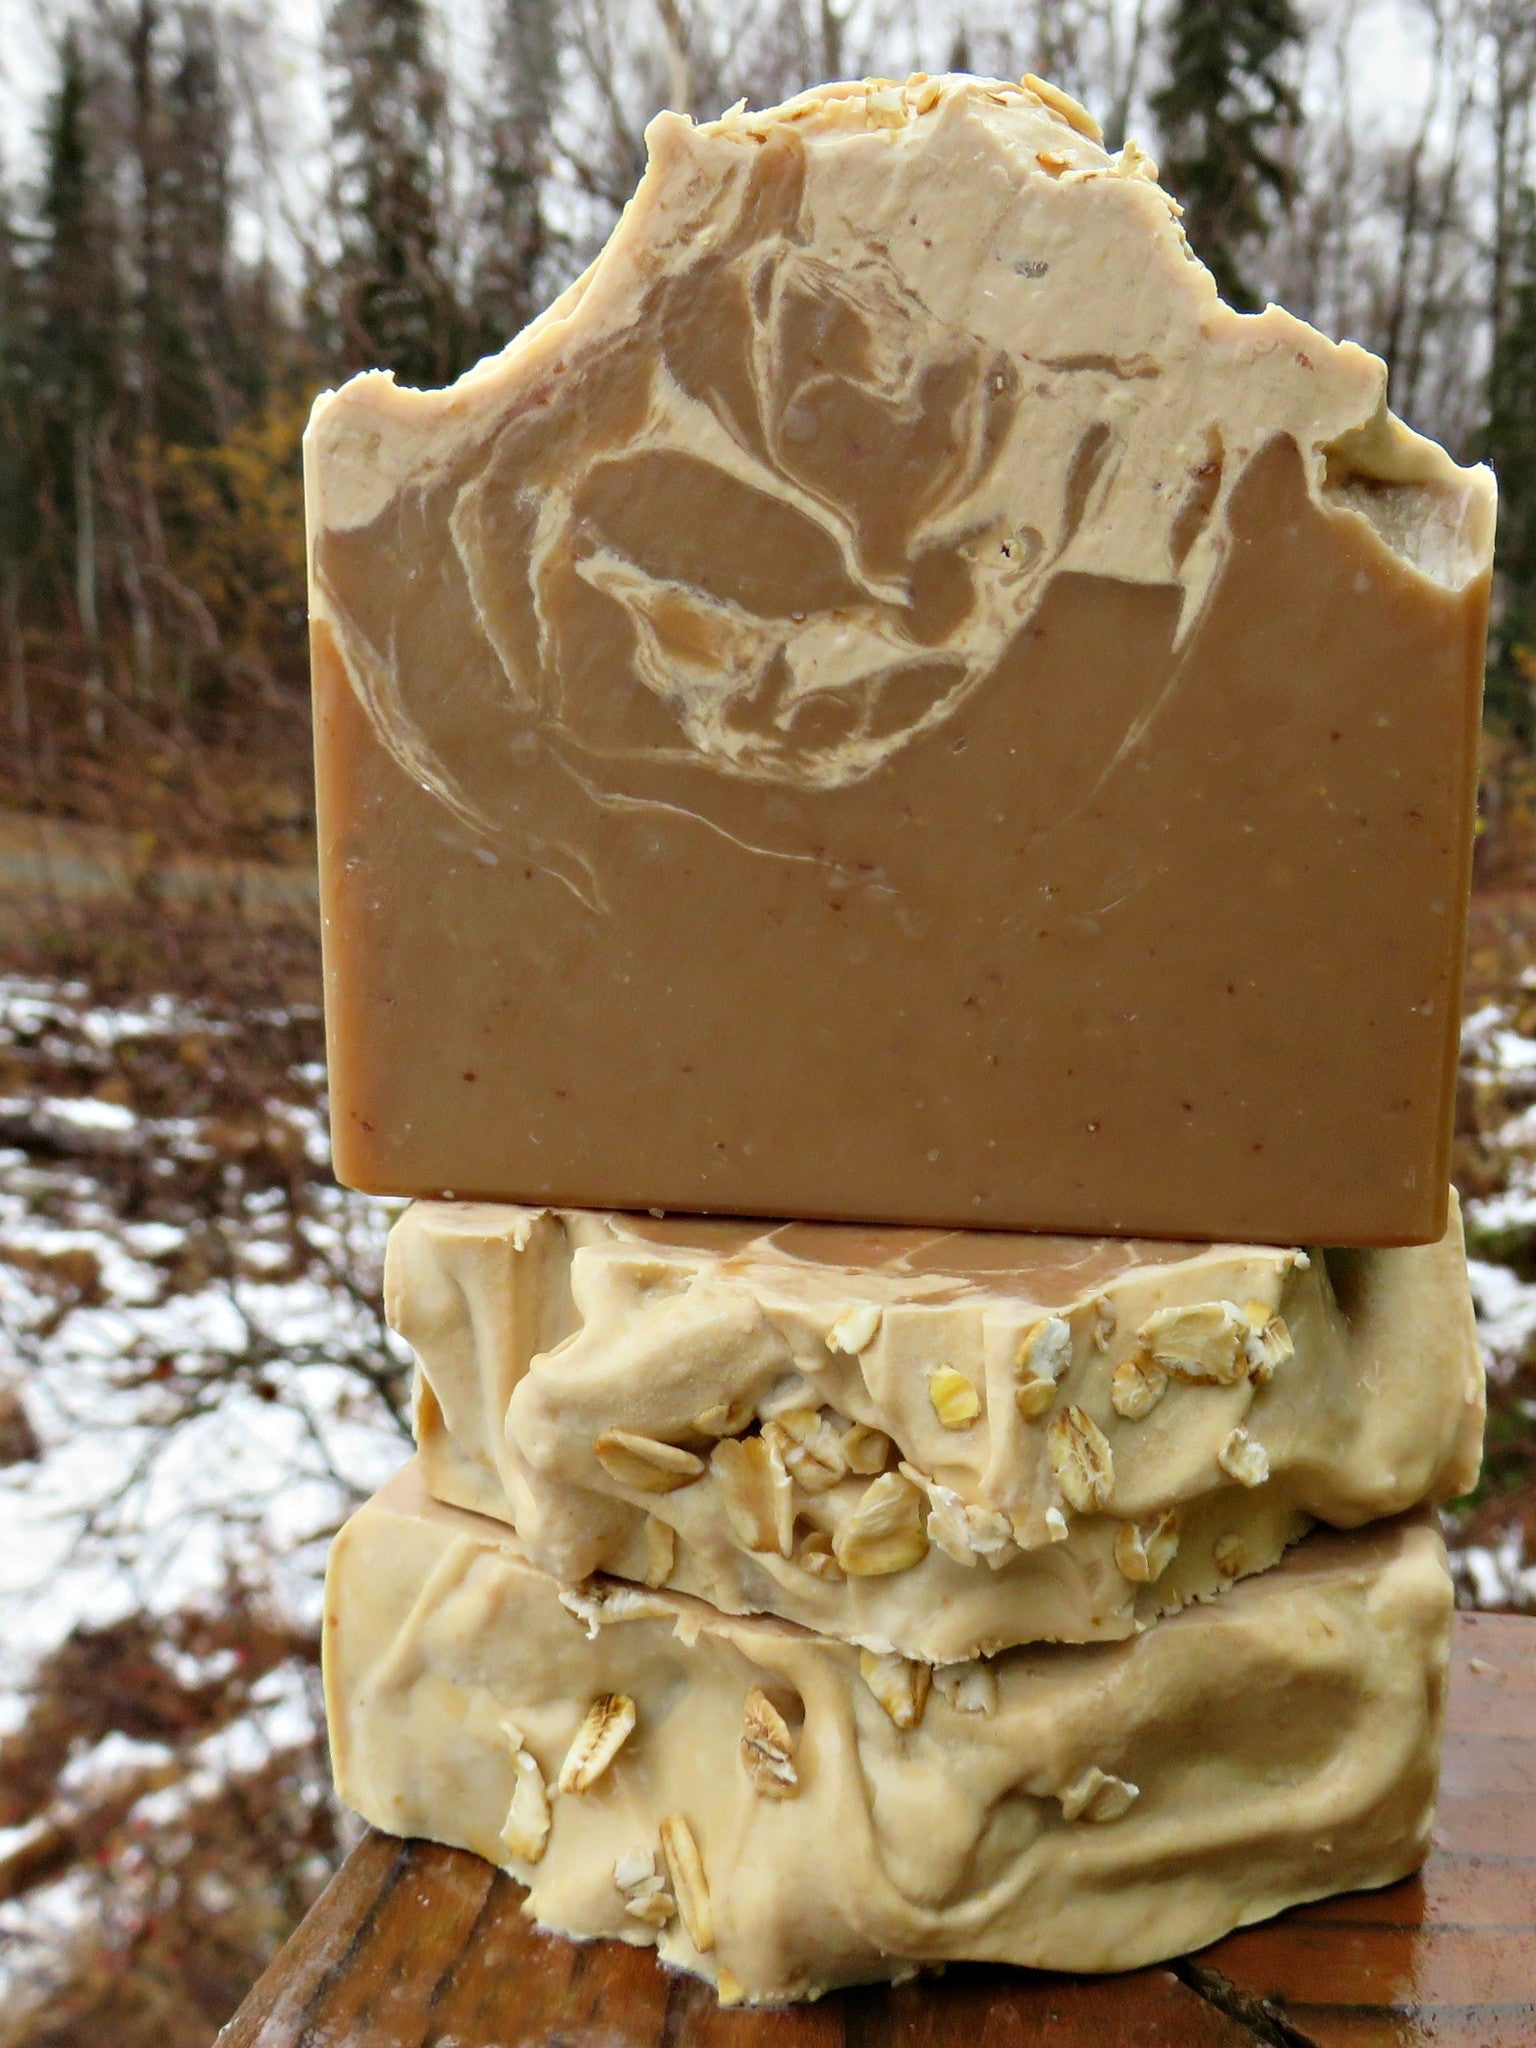 Chuli Stout Oatmeal Beer Soap